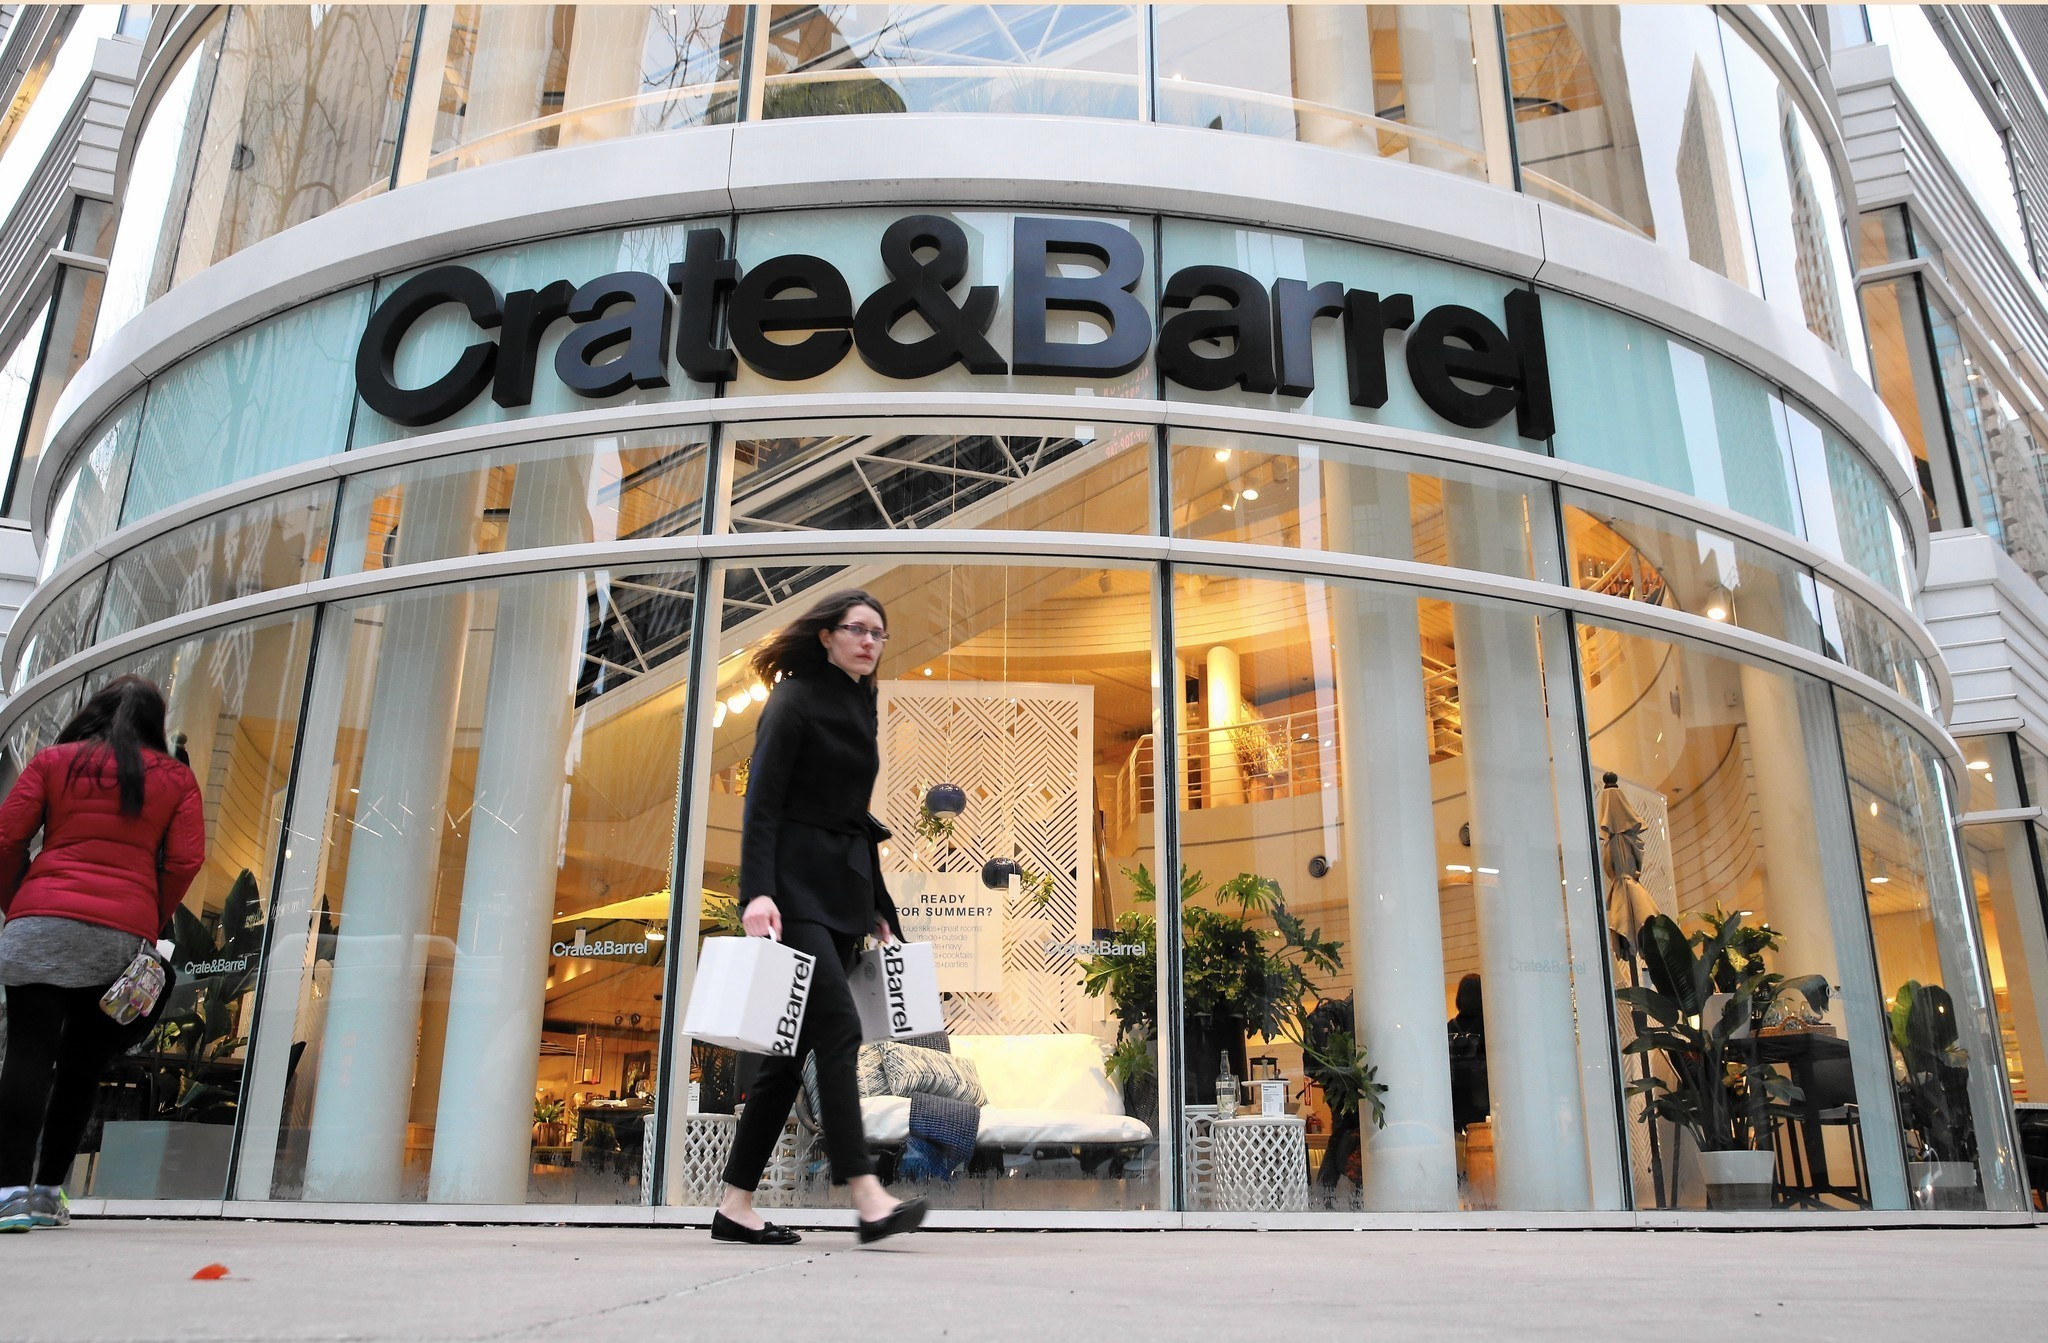 crate barrel names new ceo a month after previous one on crate and barrel id=28855